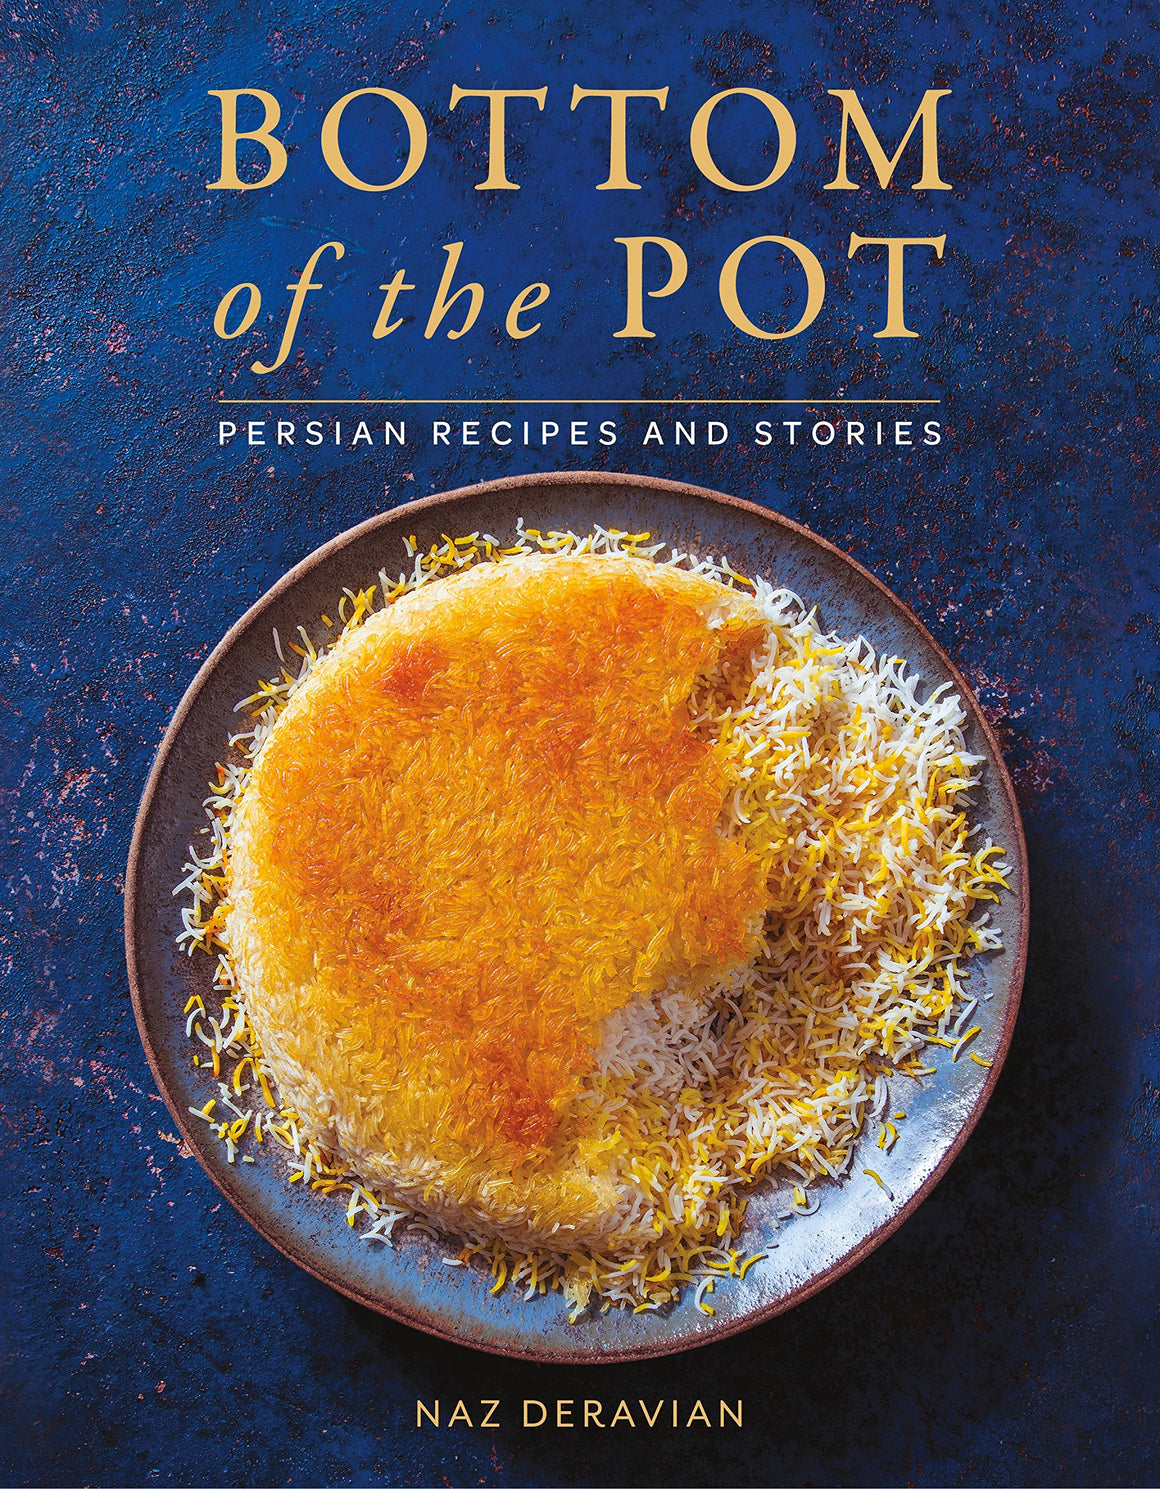 (Iranian) Naz Deravian. Bottom of the Pot: Persian Recipes and Stories. SIGNED!